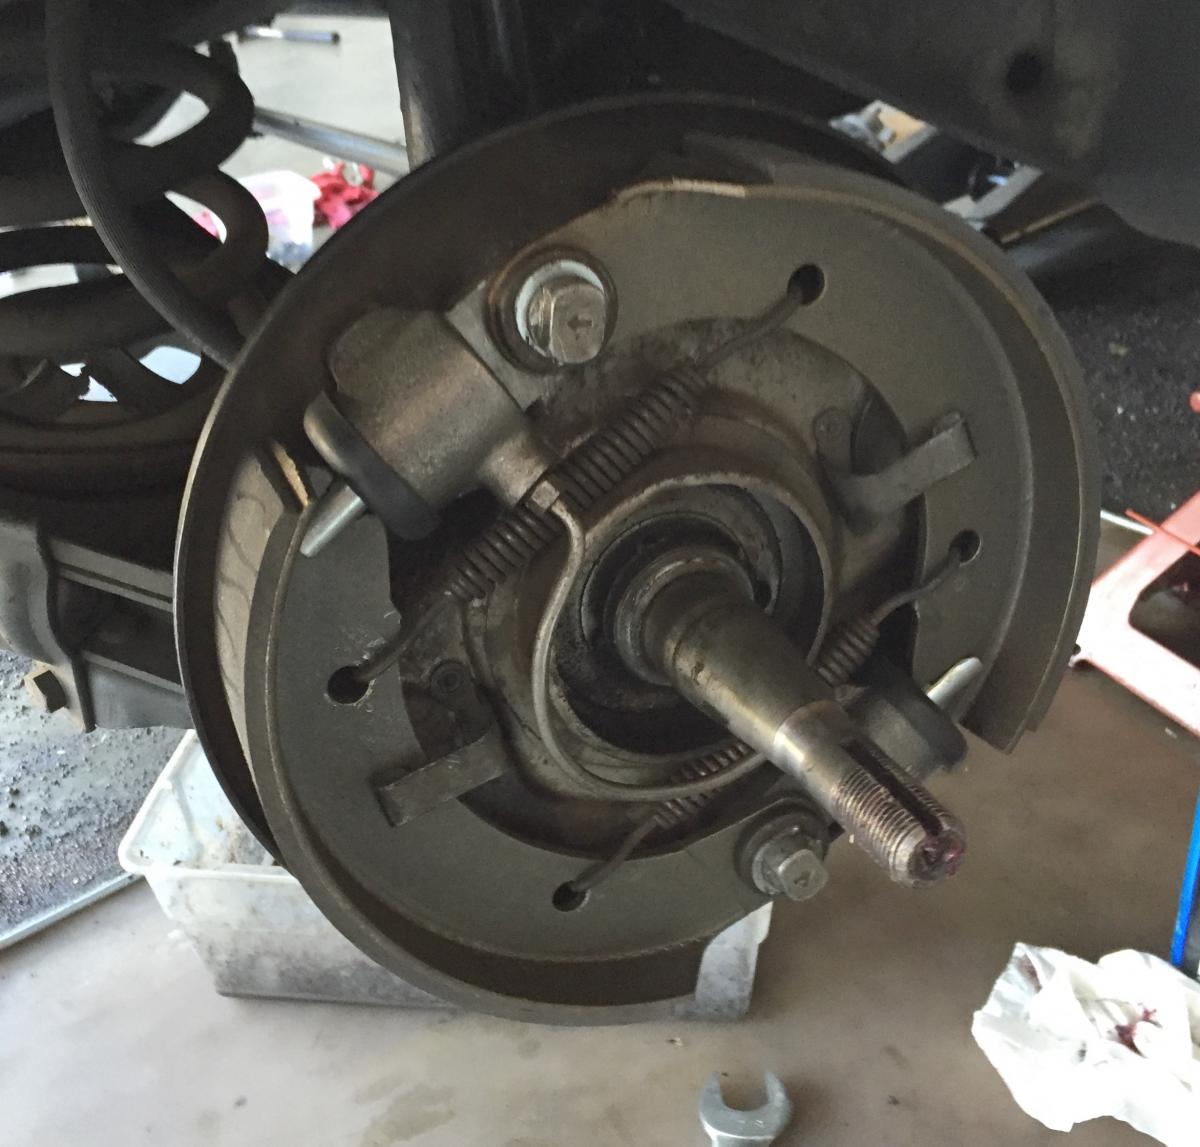 Relining Brake Drums : Brake relining resource in los angeles county pomona